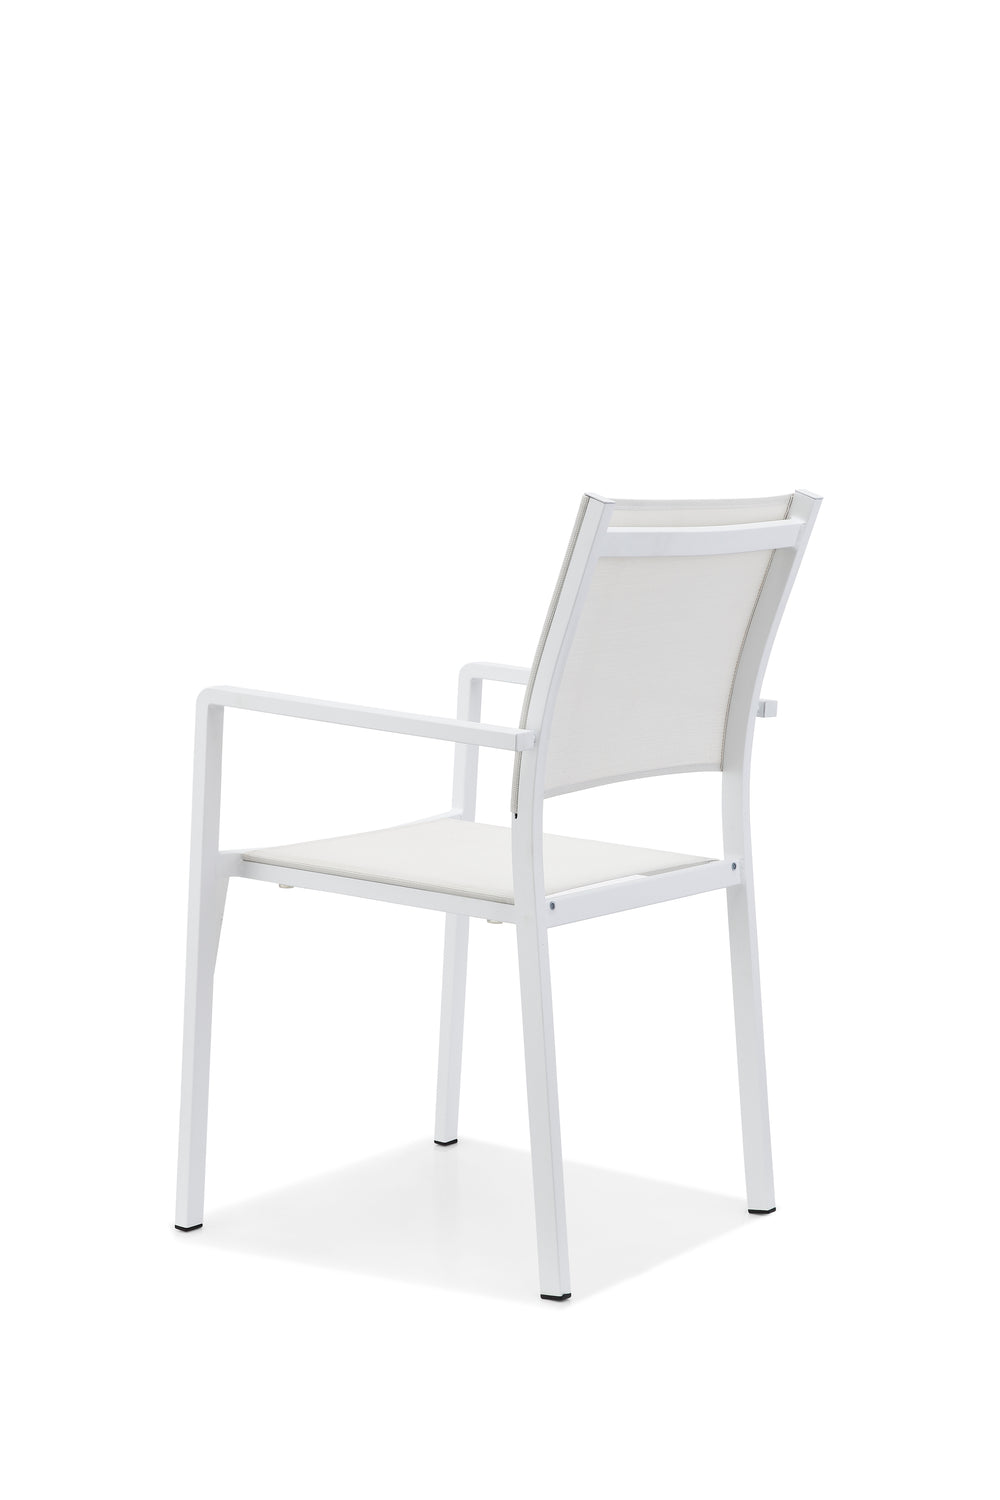 The GRDN Chair, Set of Two